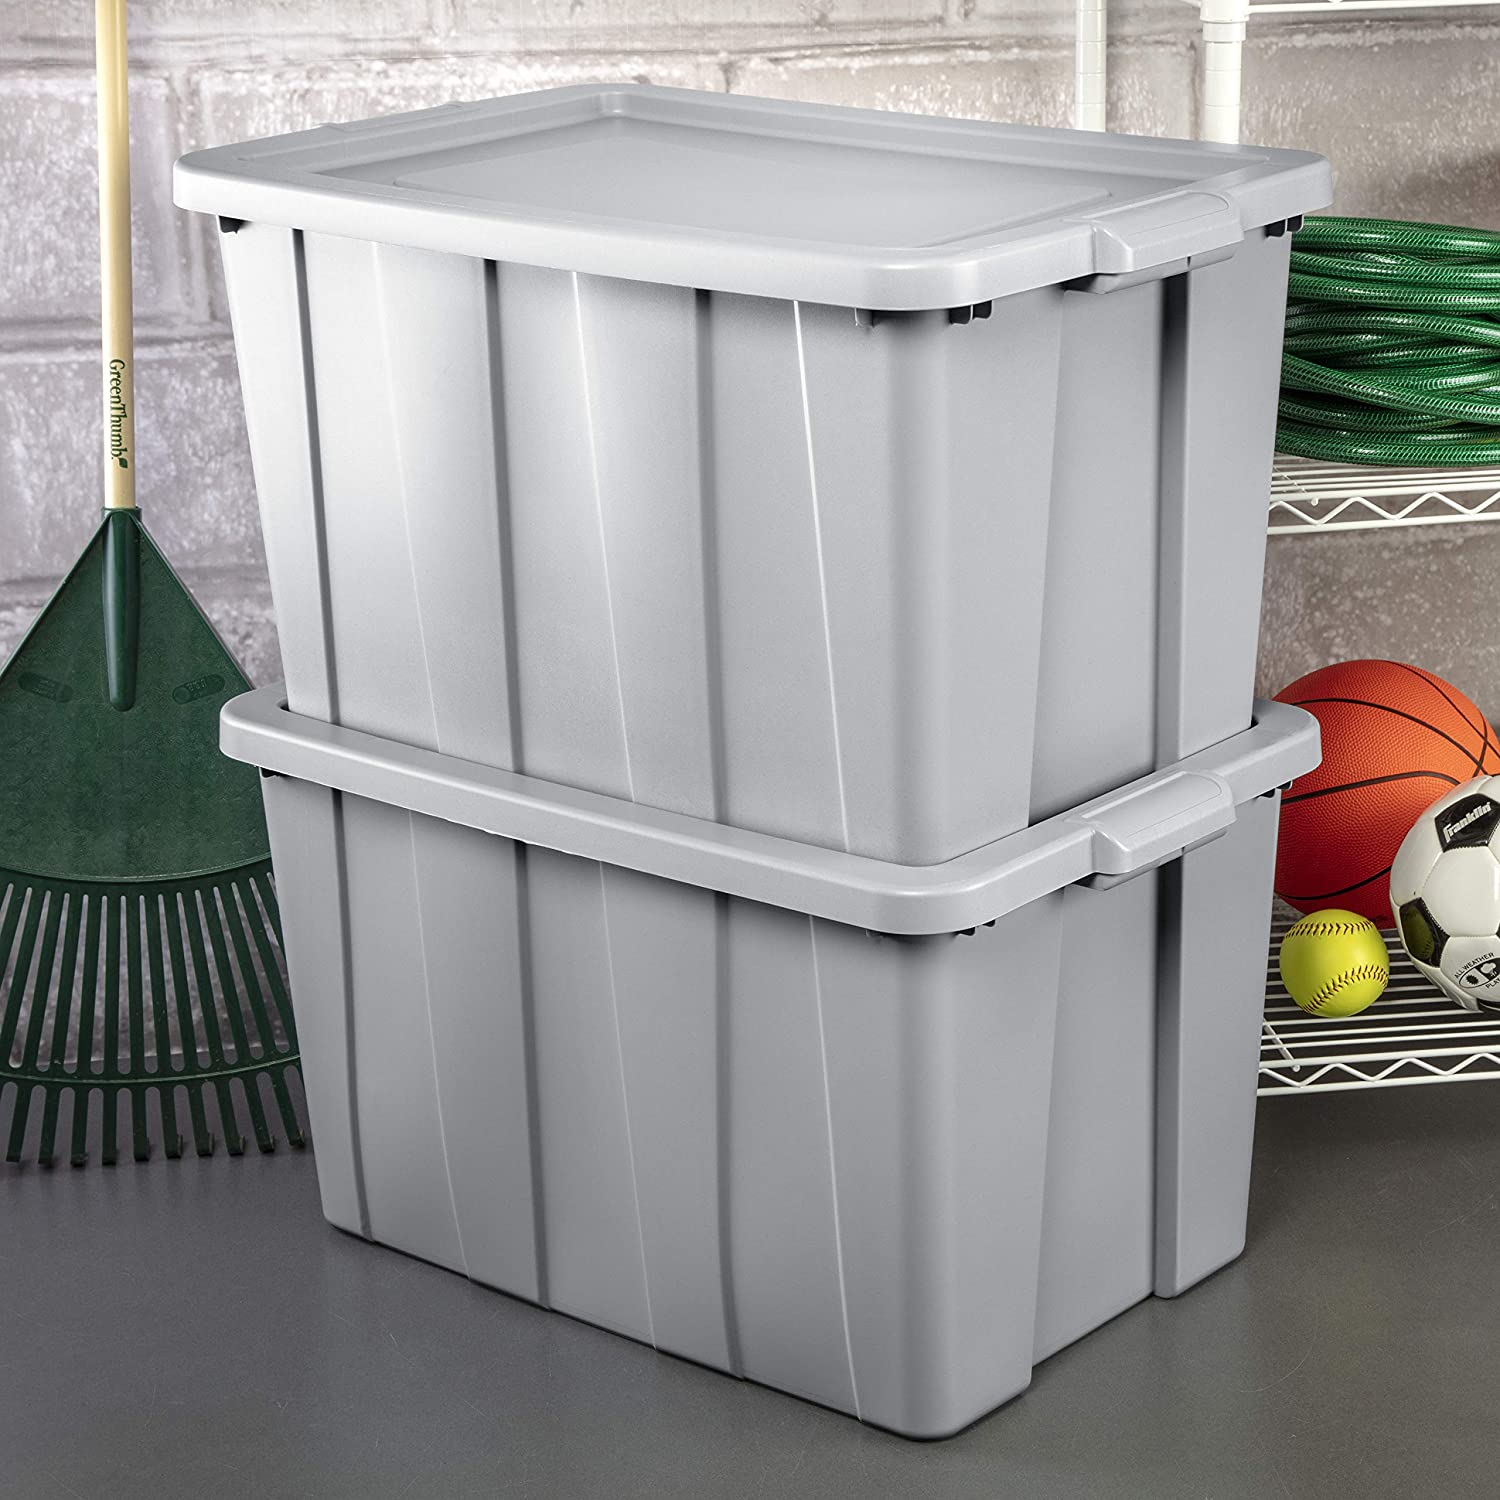 Sterilite 16796A04 Storage Tote 30 gallon Base OFFicial site Cement Lid and Tampa Mall